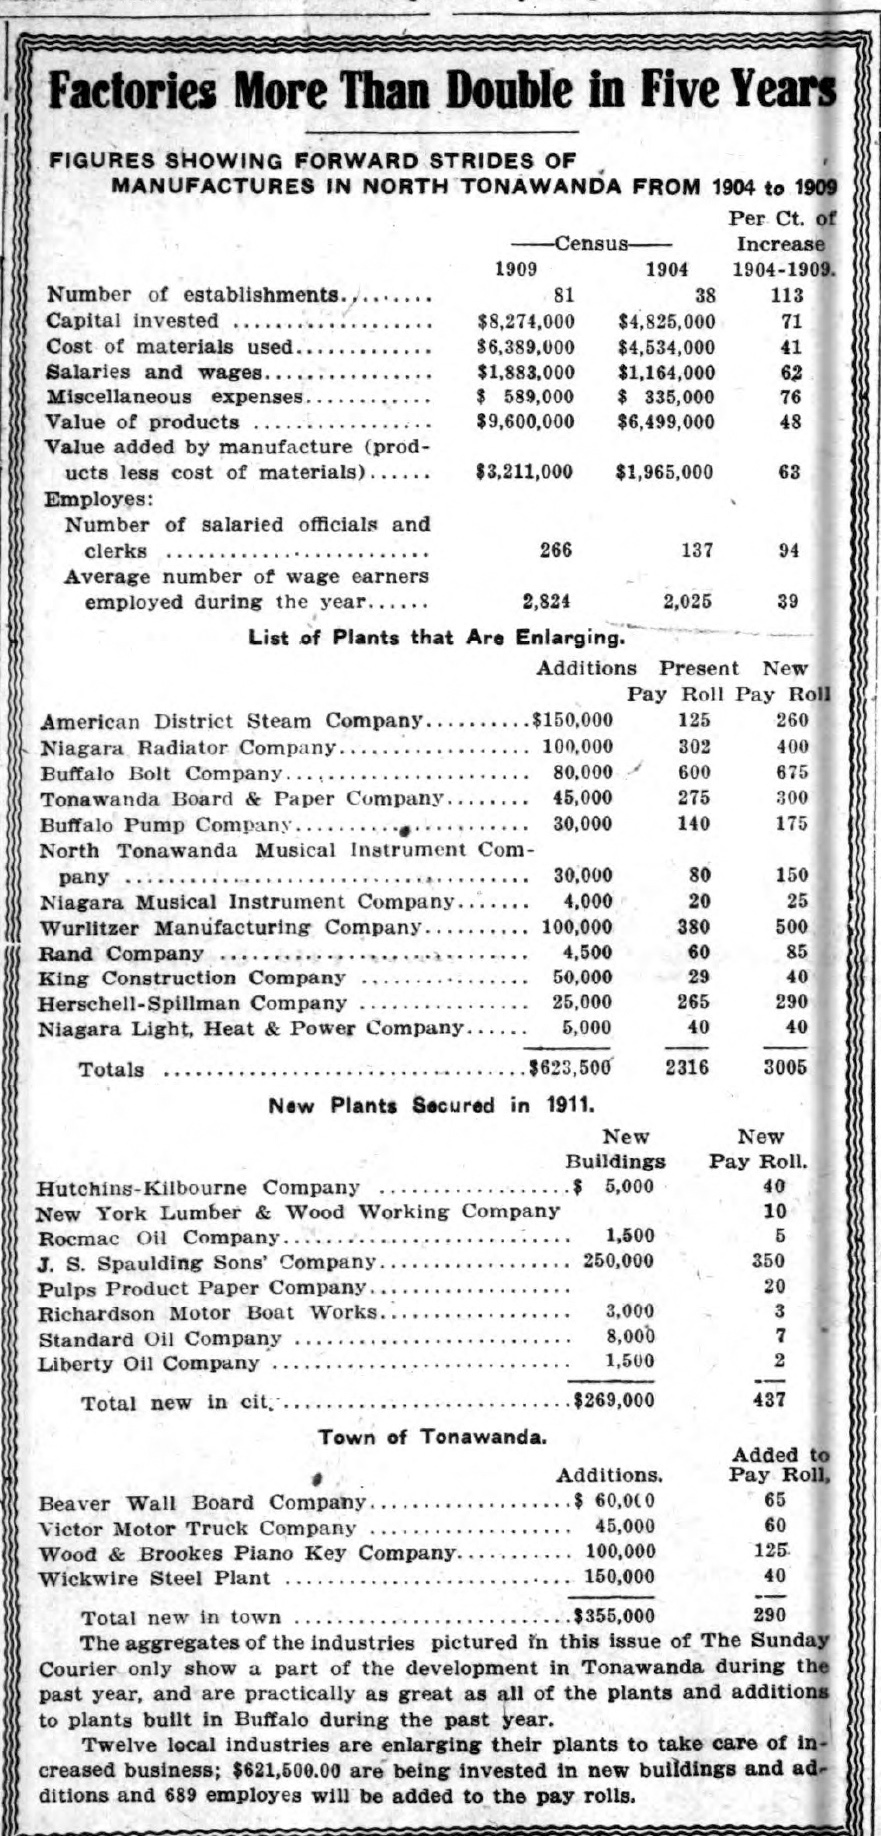 Factories More Than Double in 5 Years, article (1912-03-03).jpg